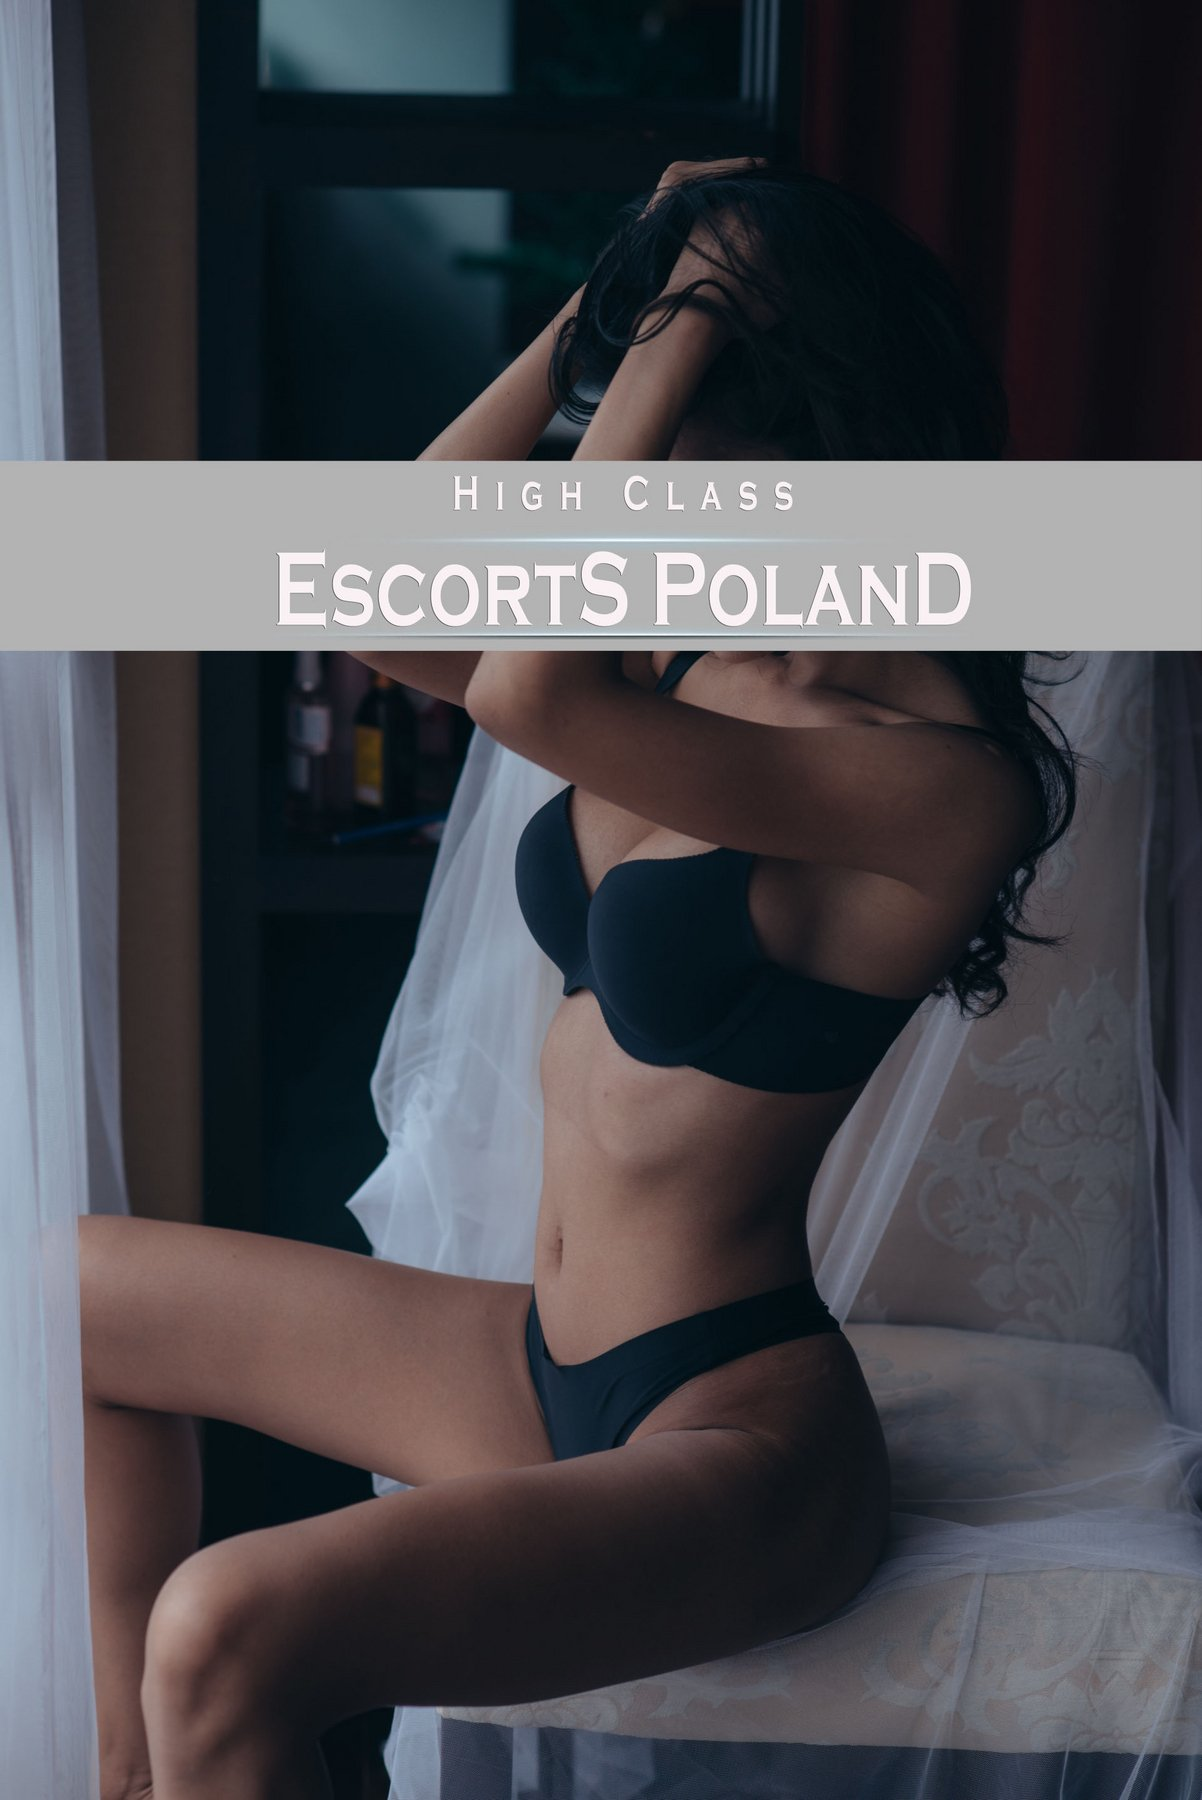 Polish escort services